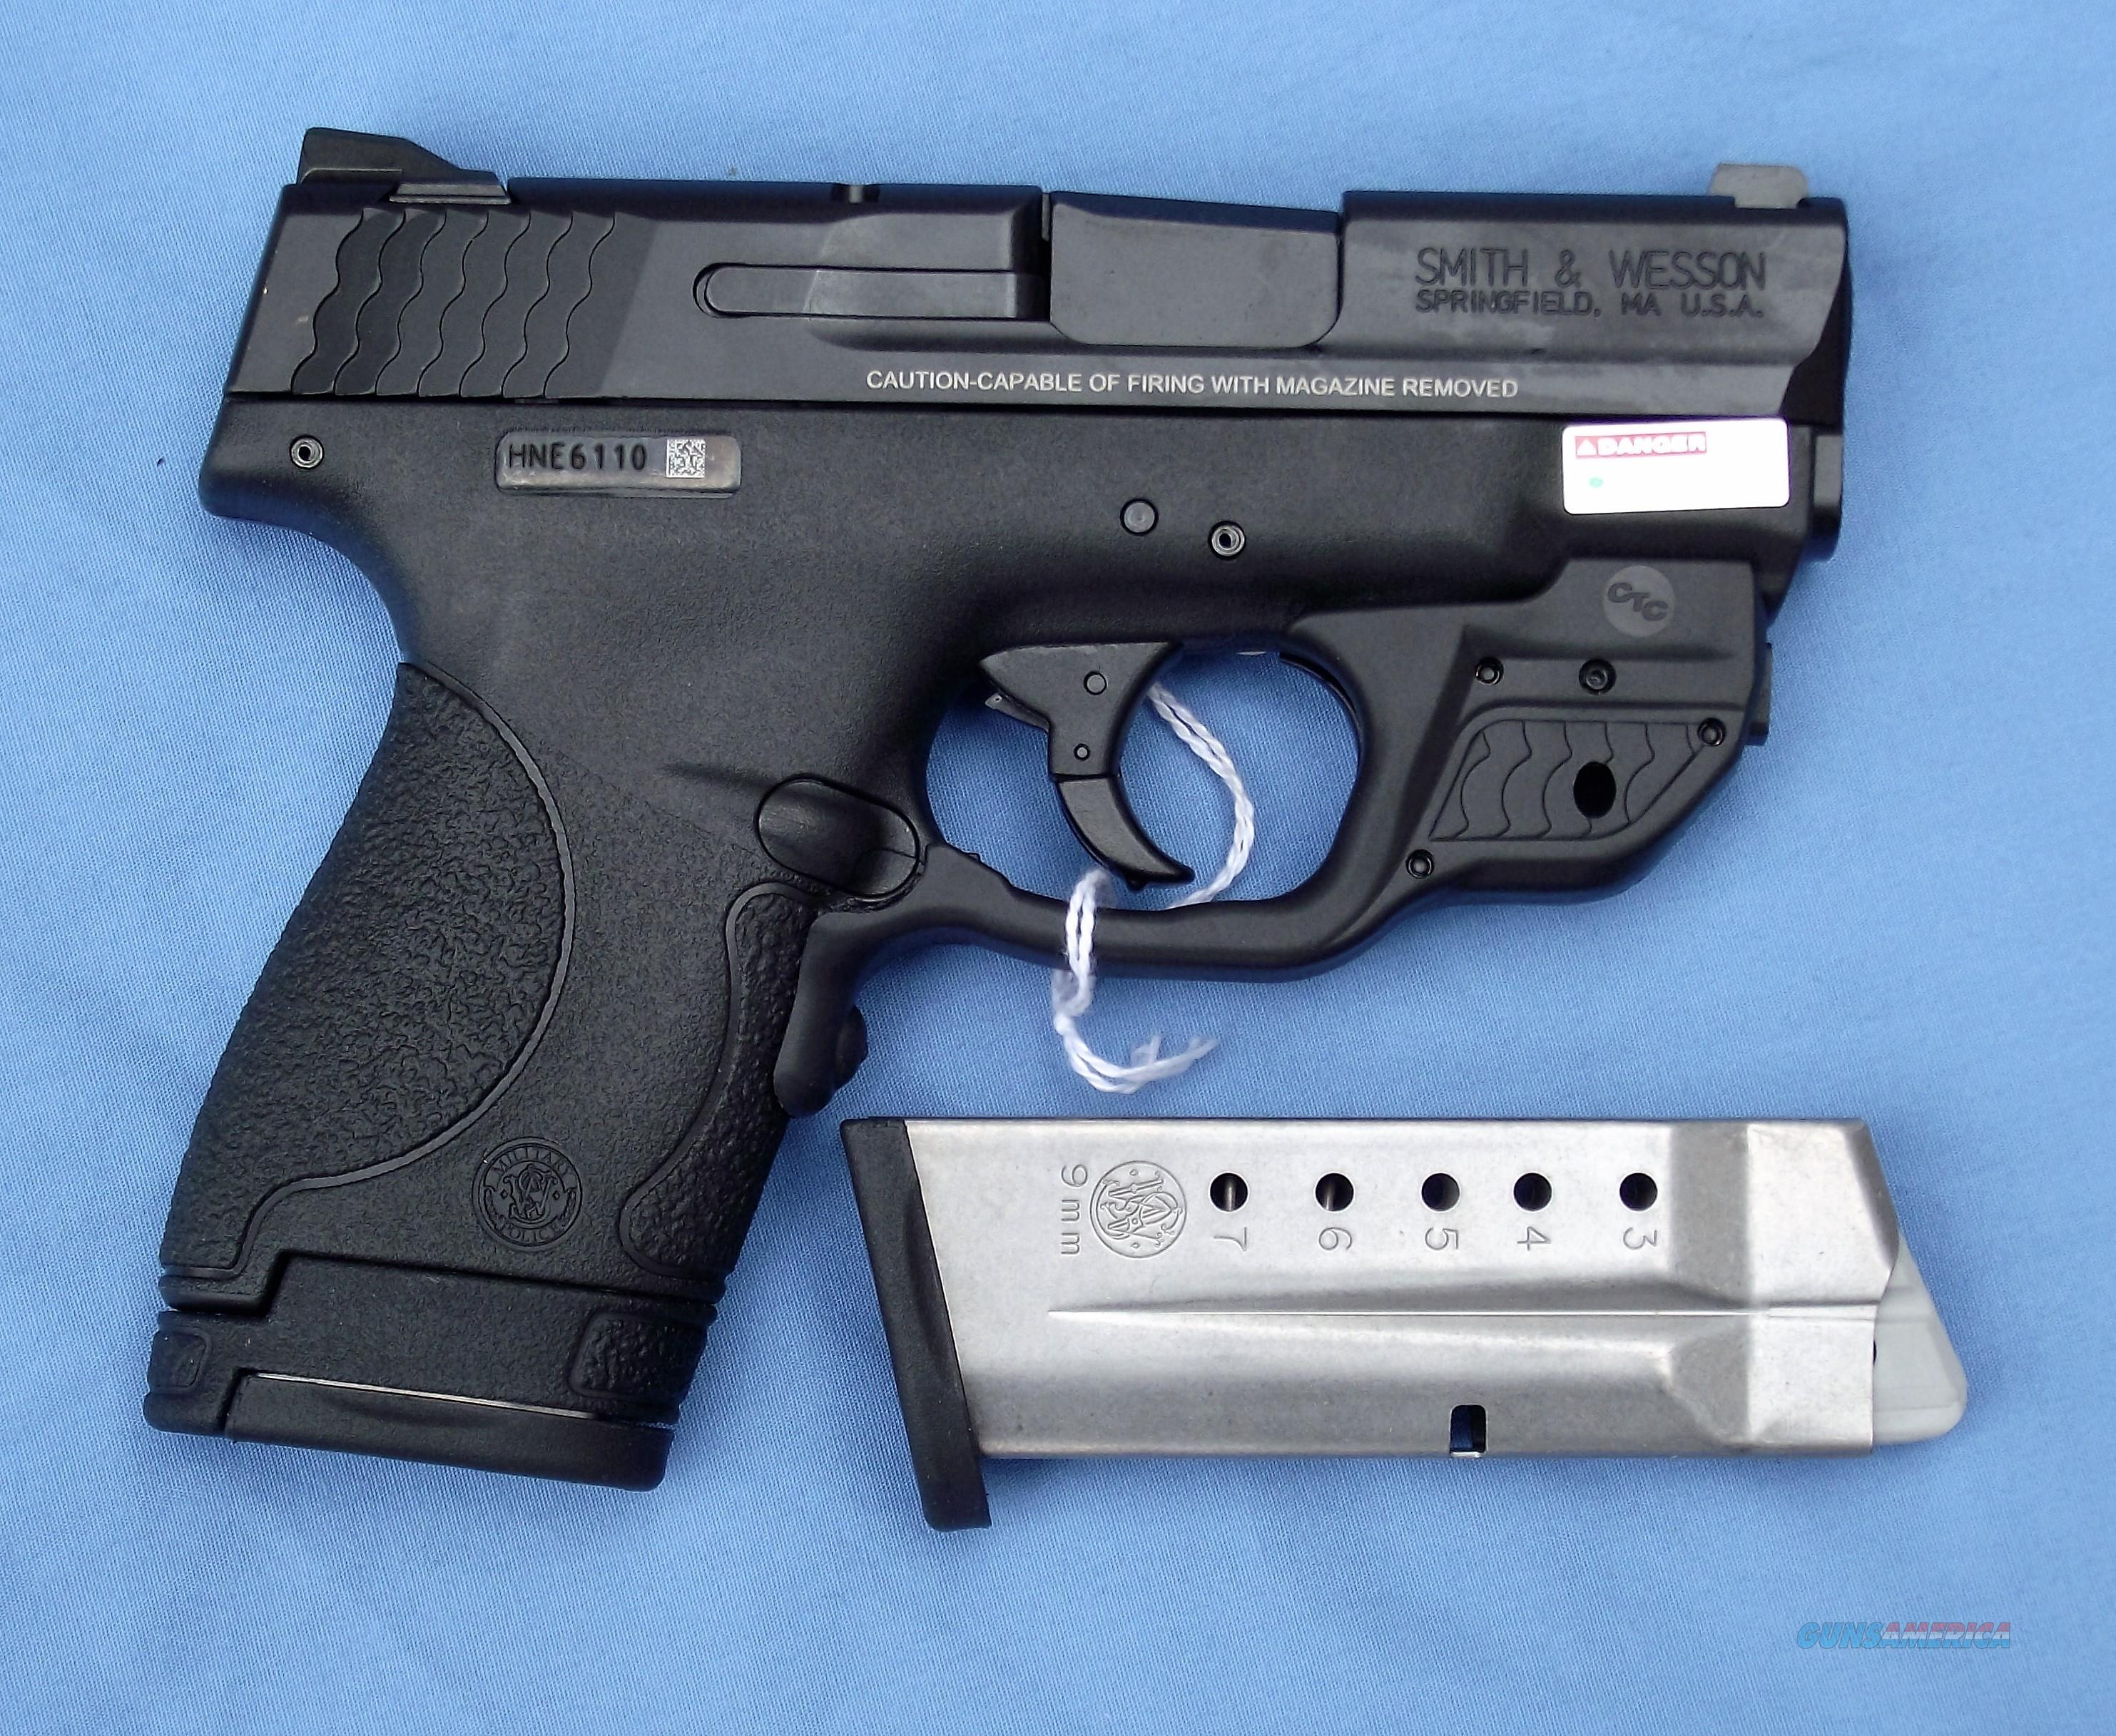 SMITH & WESSON M&P9 SHIELD, GREEN LASER,  NO RESERVE, FREE LAYAWAY  Guns > Pistols > Smith & Wesson Pistols - Autos > Shield